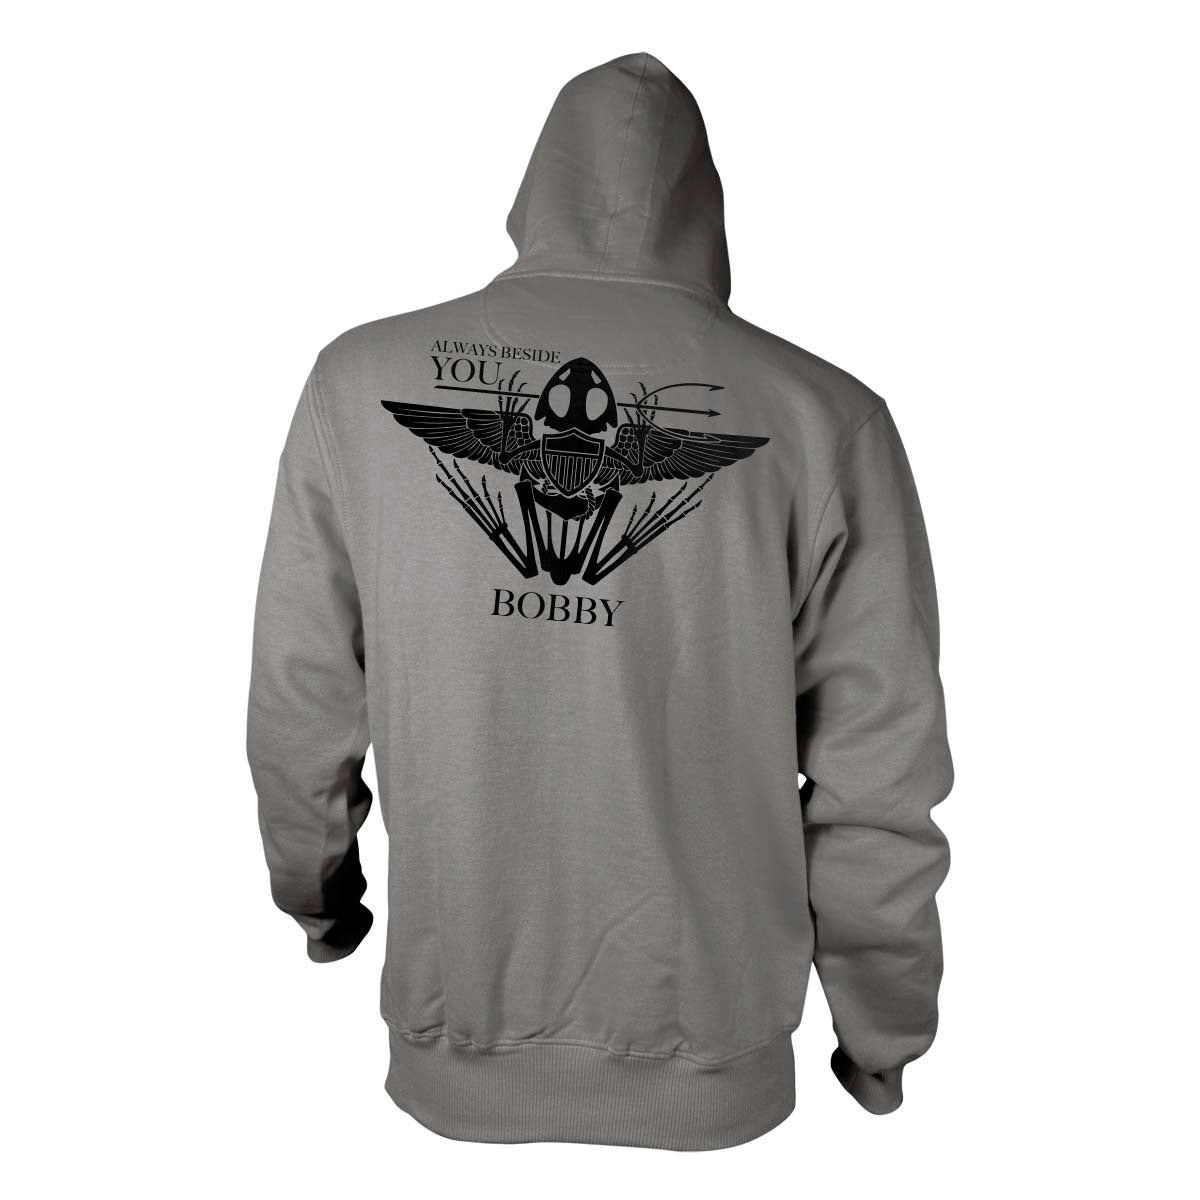 Robert 'Bobby' Needham - Memorial Hoodie - Grey - Hoodies - Pipe Hitters Union